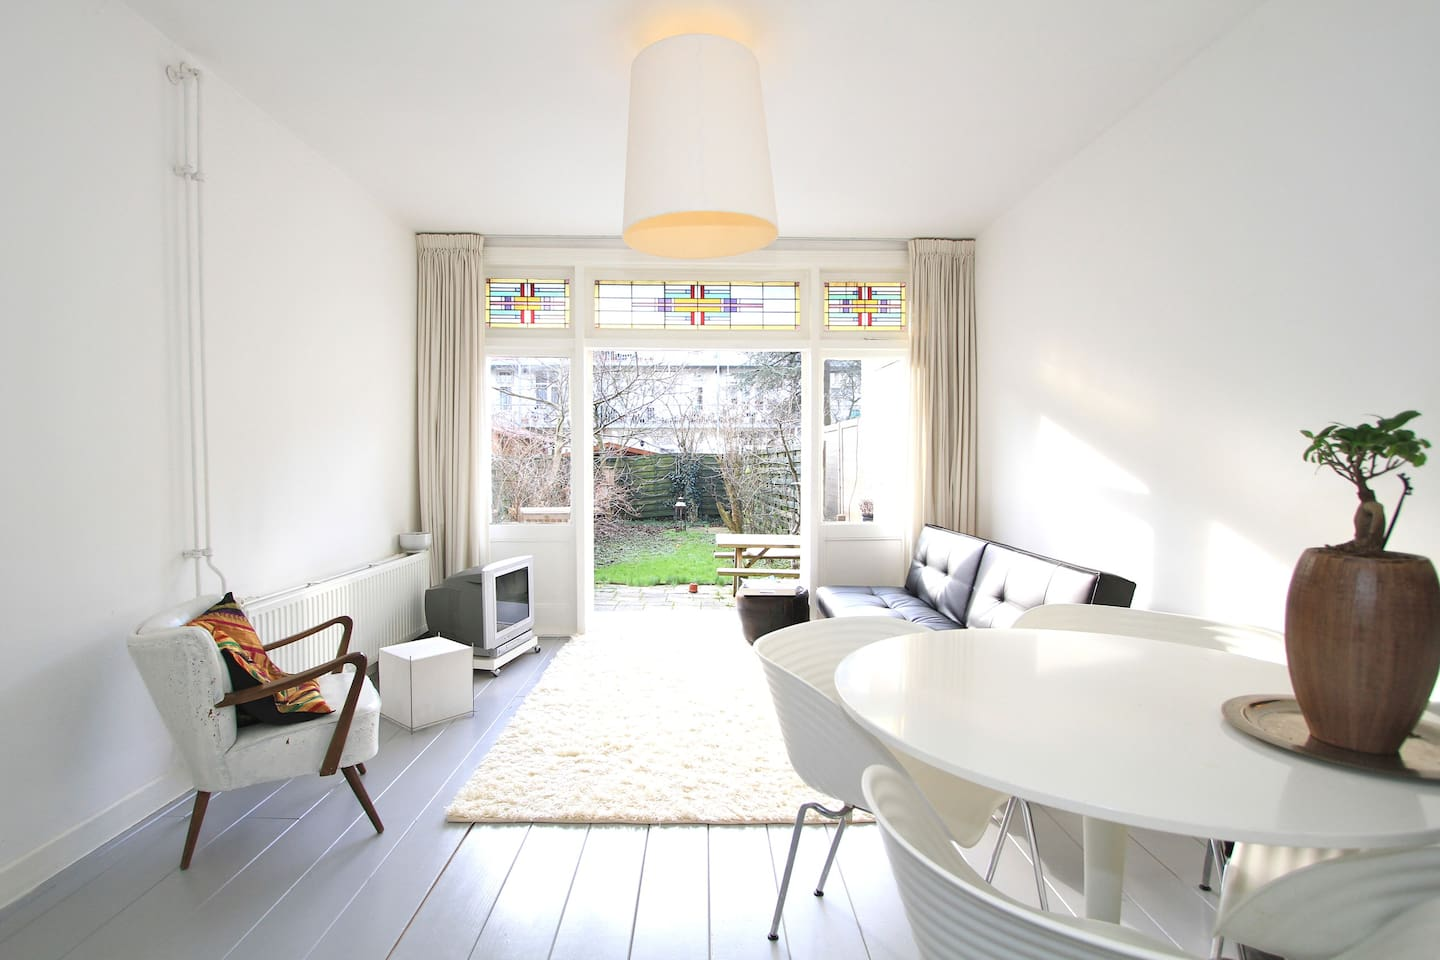 Nice sunny apartment with Garden!